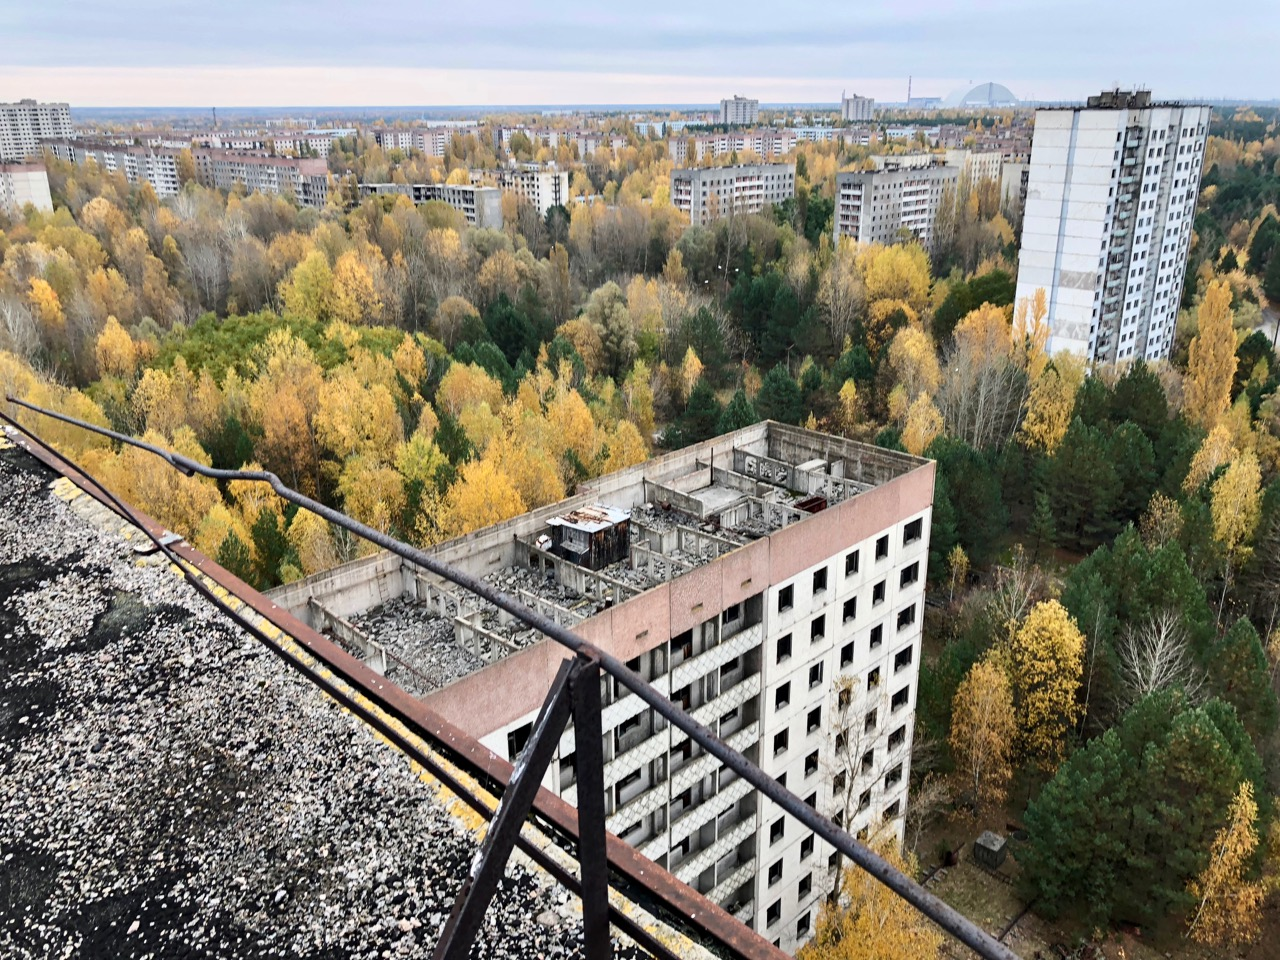 On top of 16 story apartment block